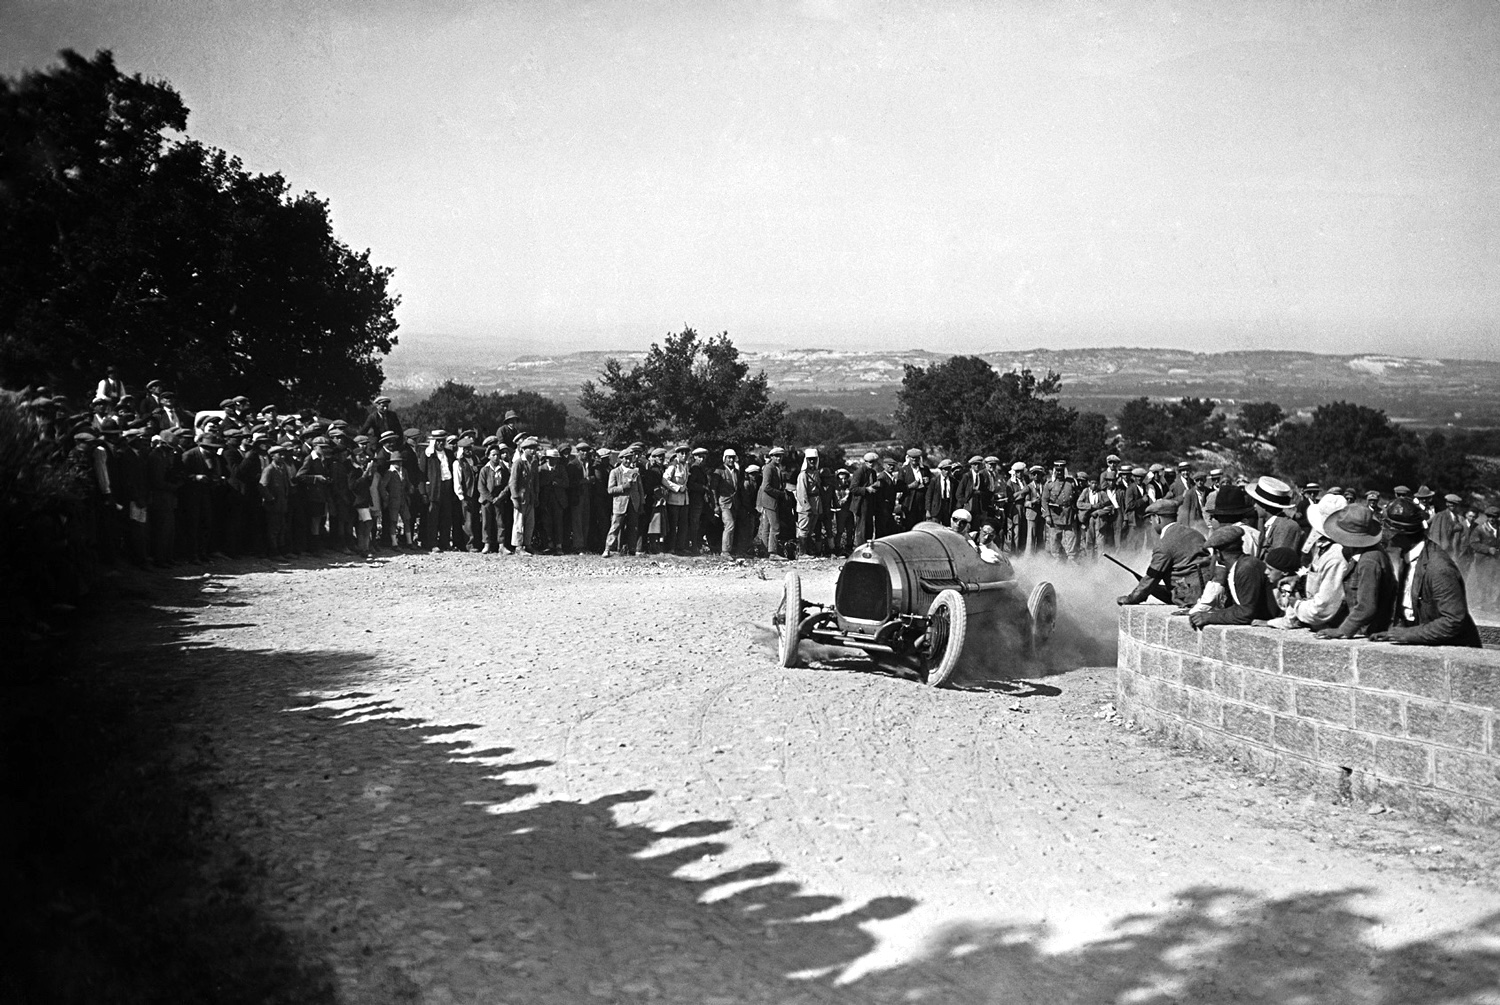 For The Thrill of Speed - Mont Ventoux 1925